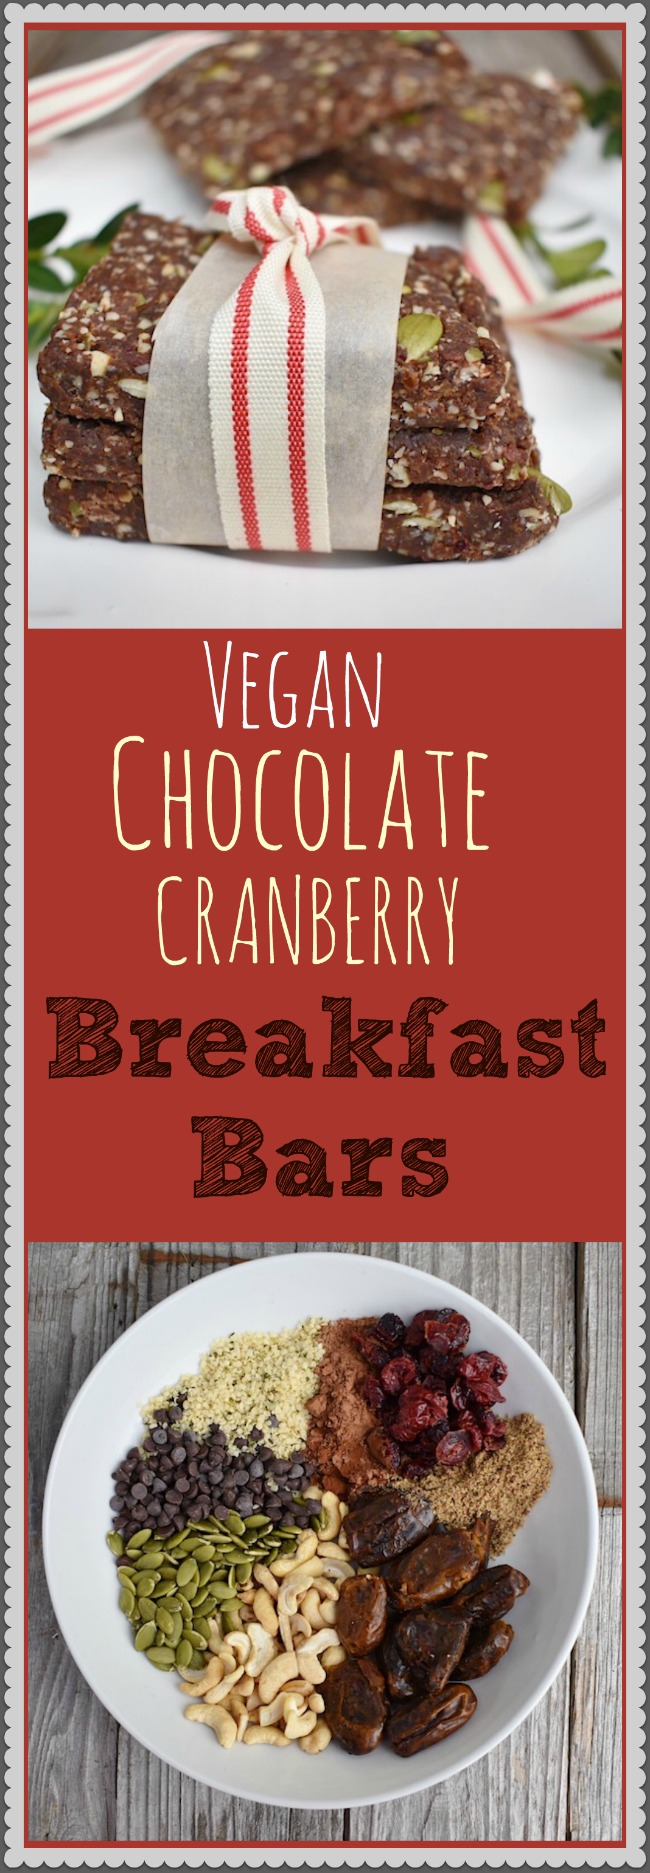 Vegan Chocolate Cranberry Breakfast Bars